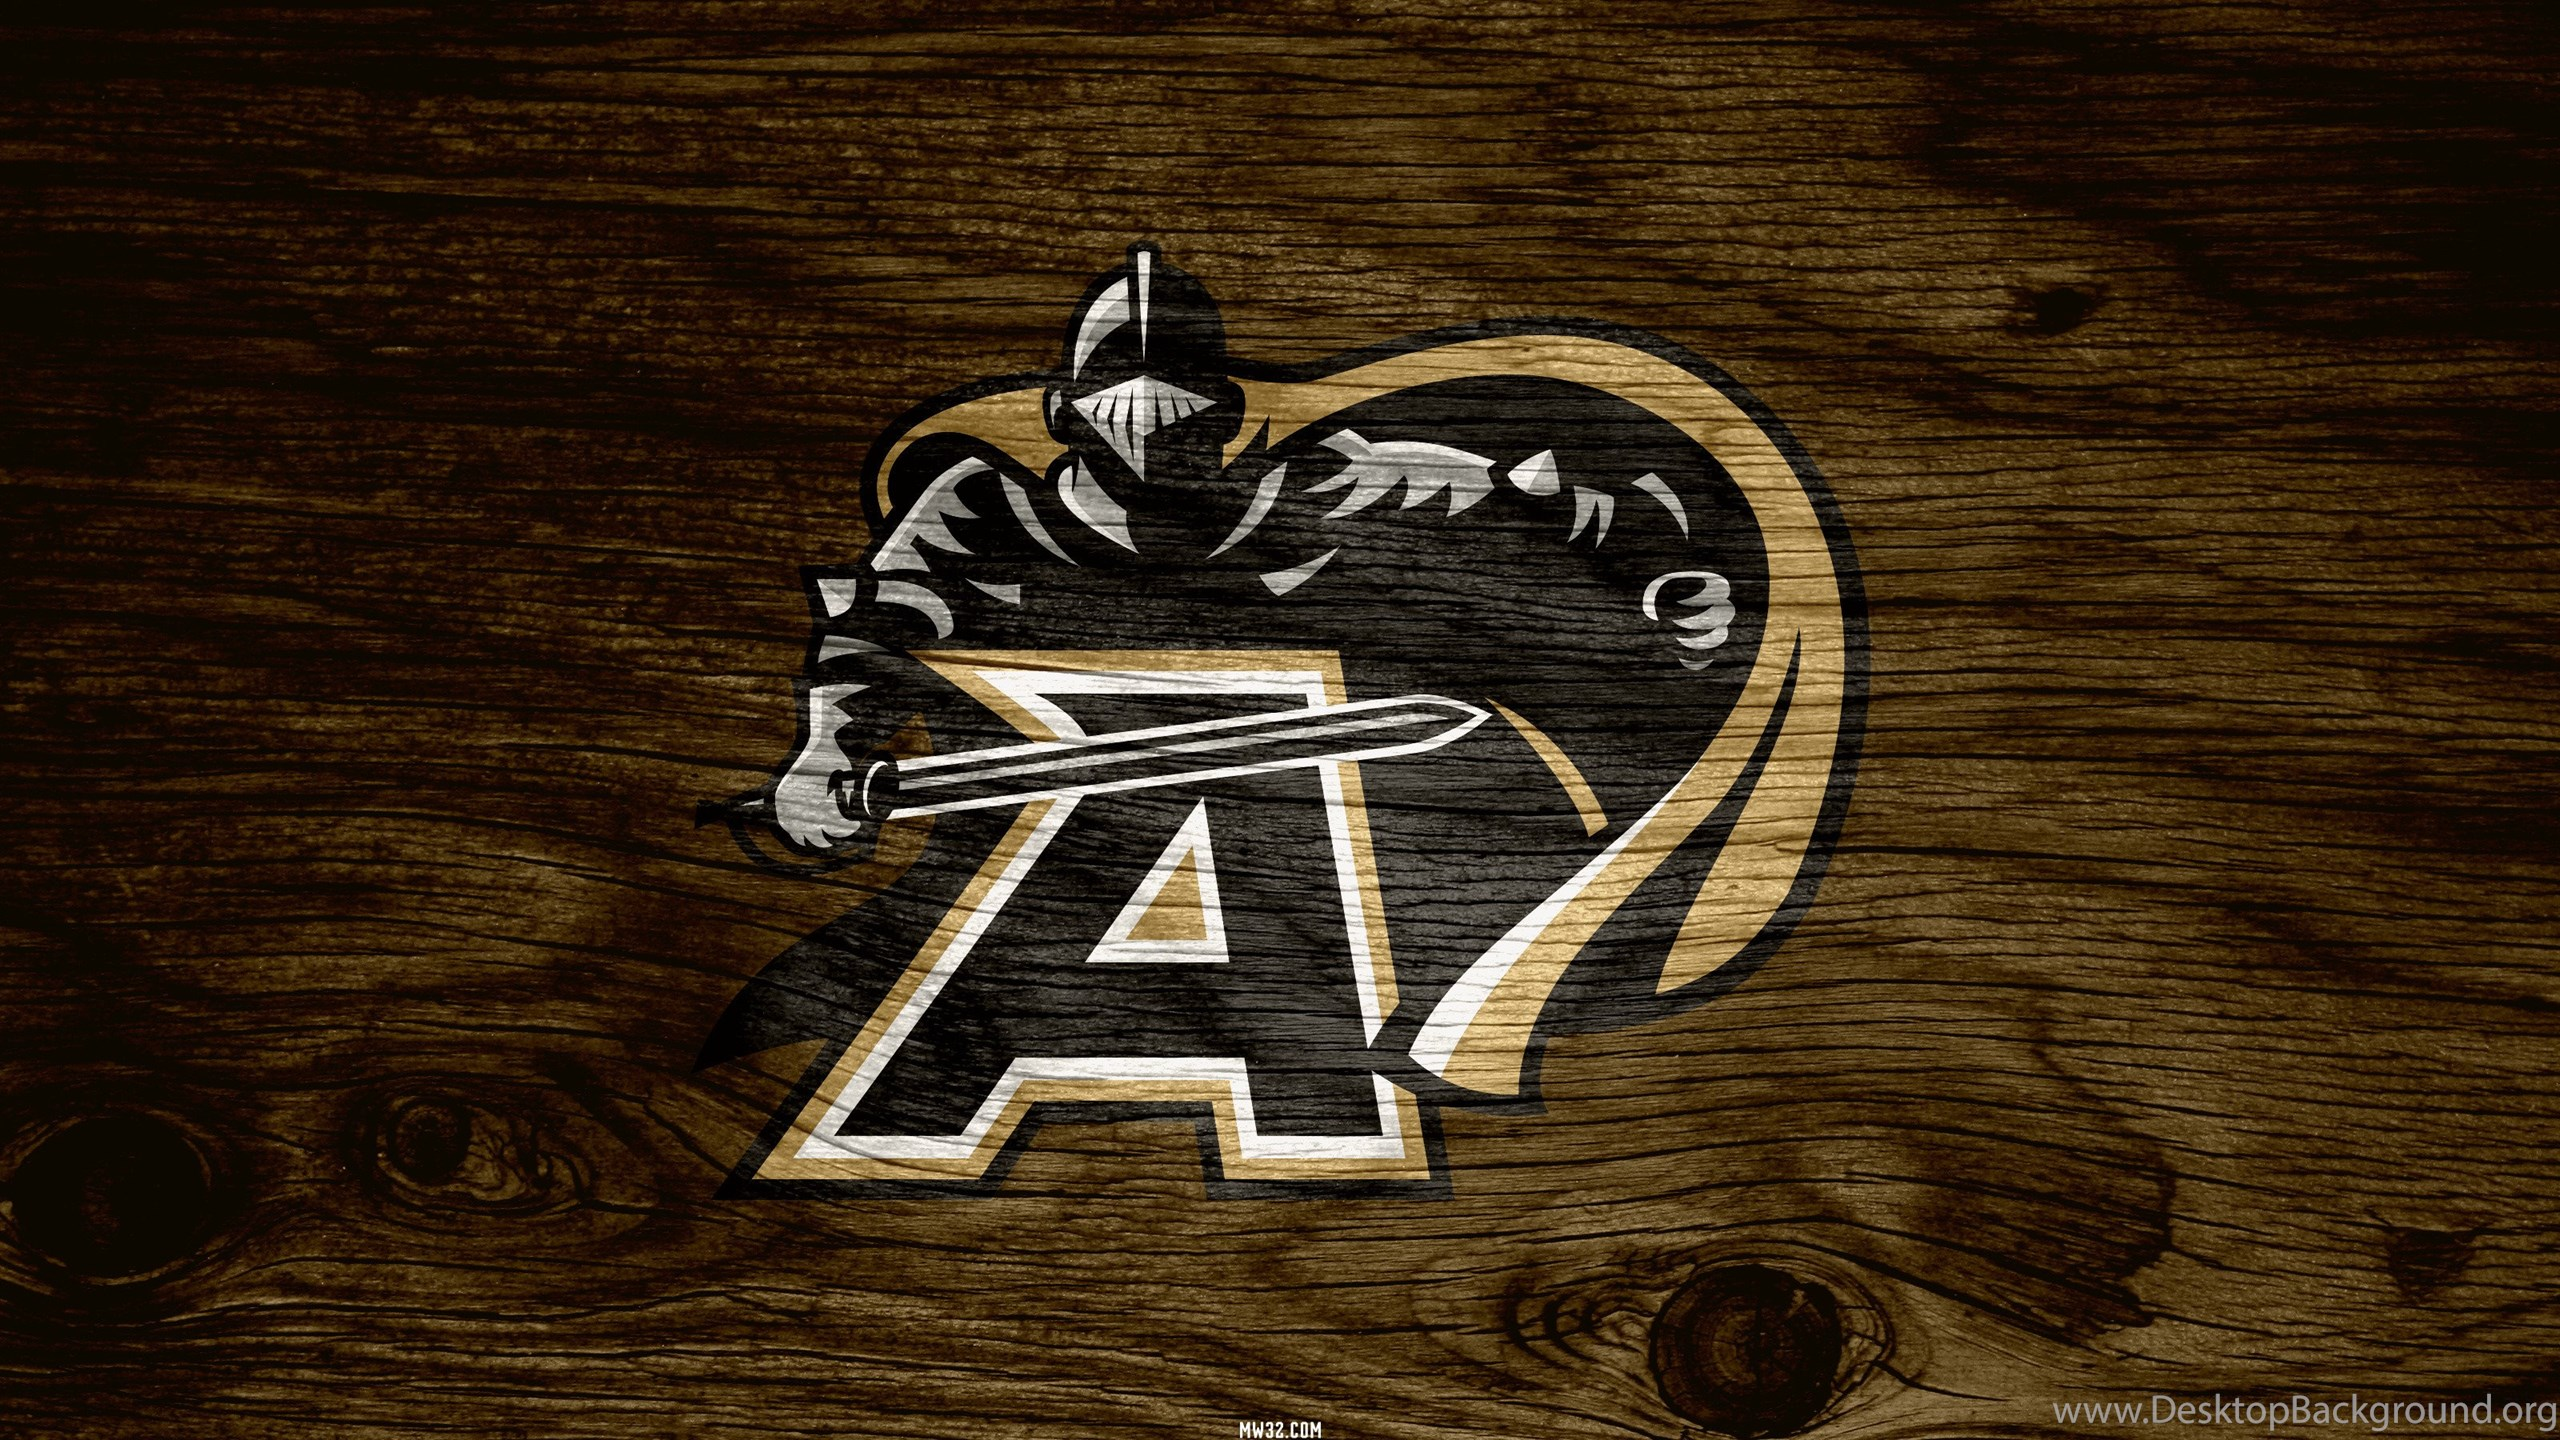 jestingstock army black knights football iphone wallpapers